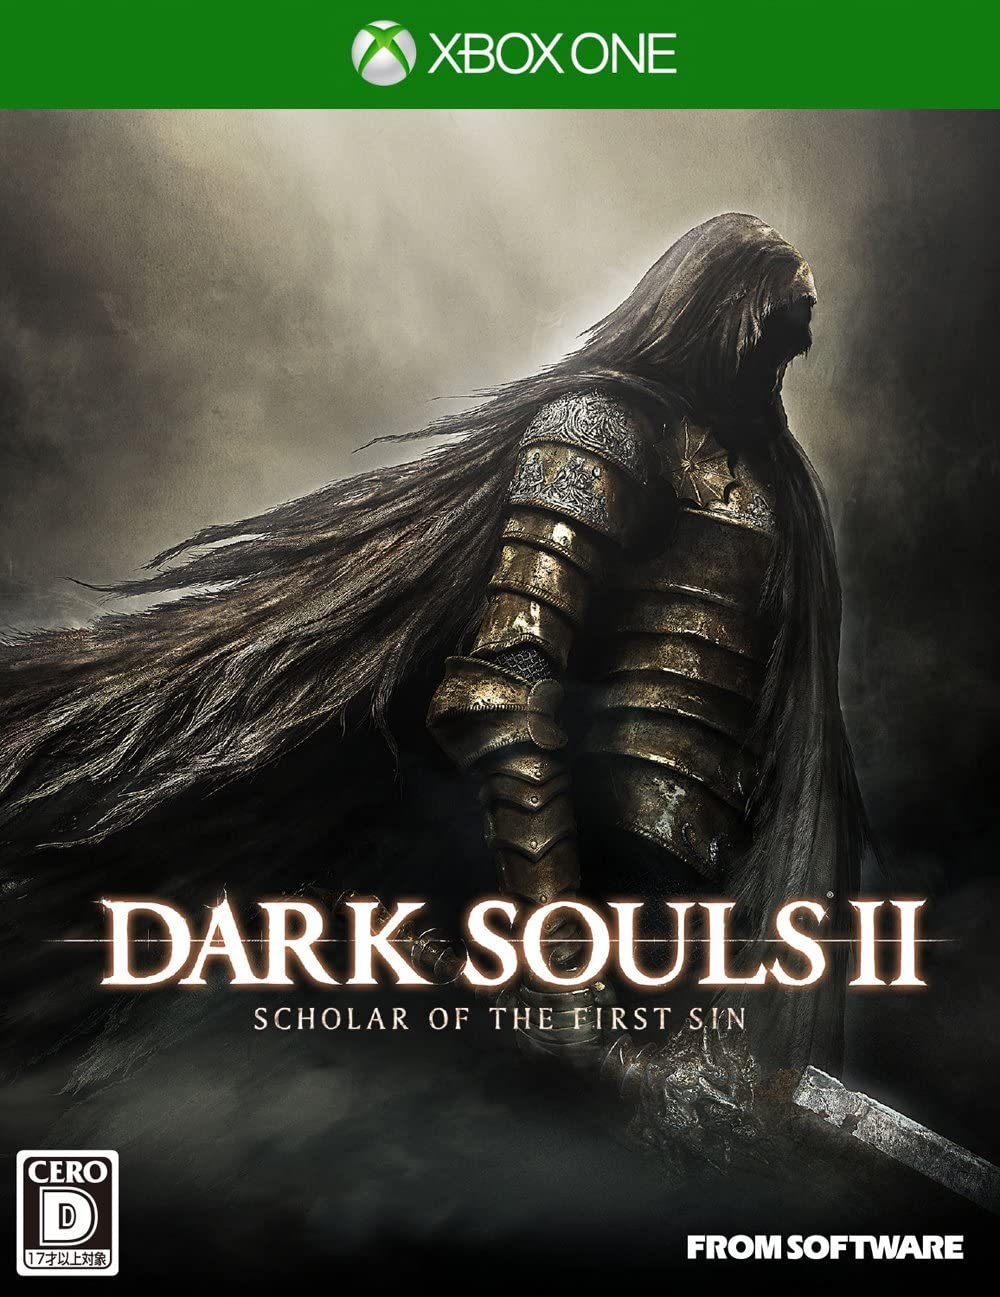 DARK SOULS II SCHOLAR OF THE FIRST SIN: Amazon.es: Videojuegos